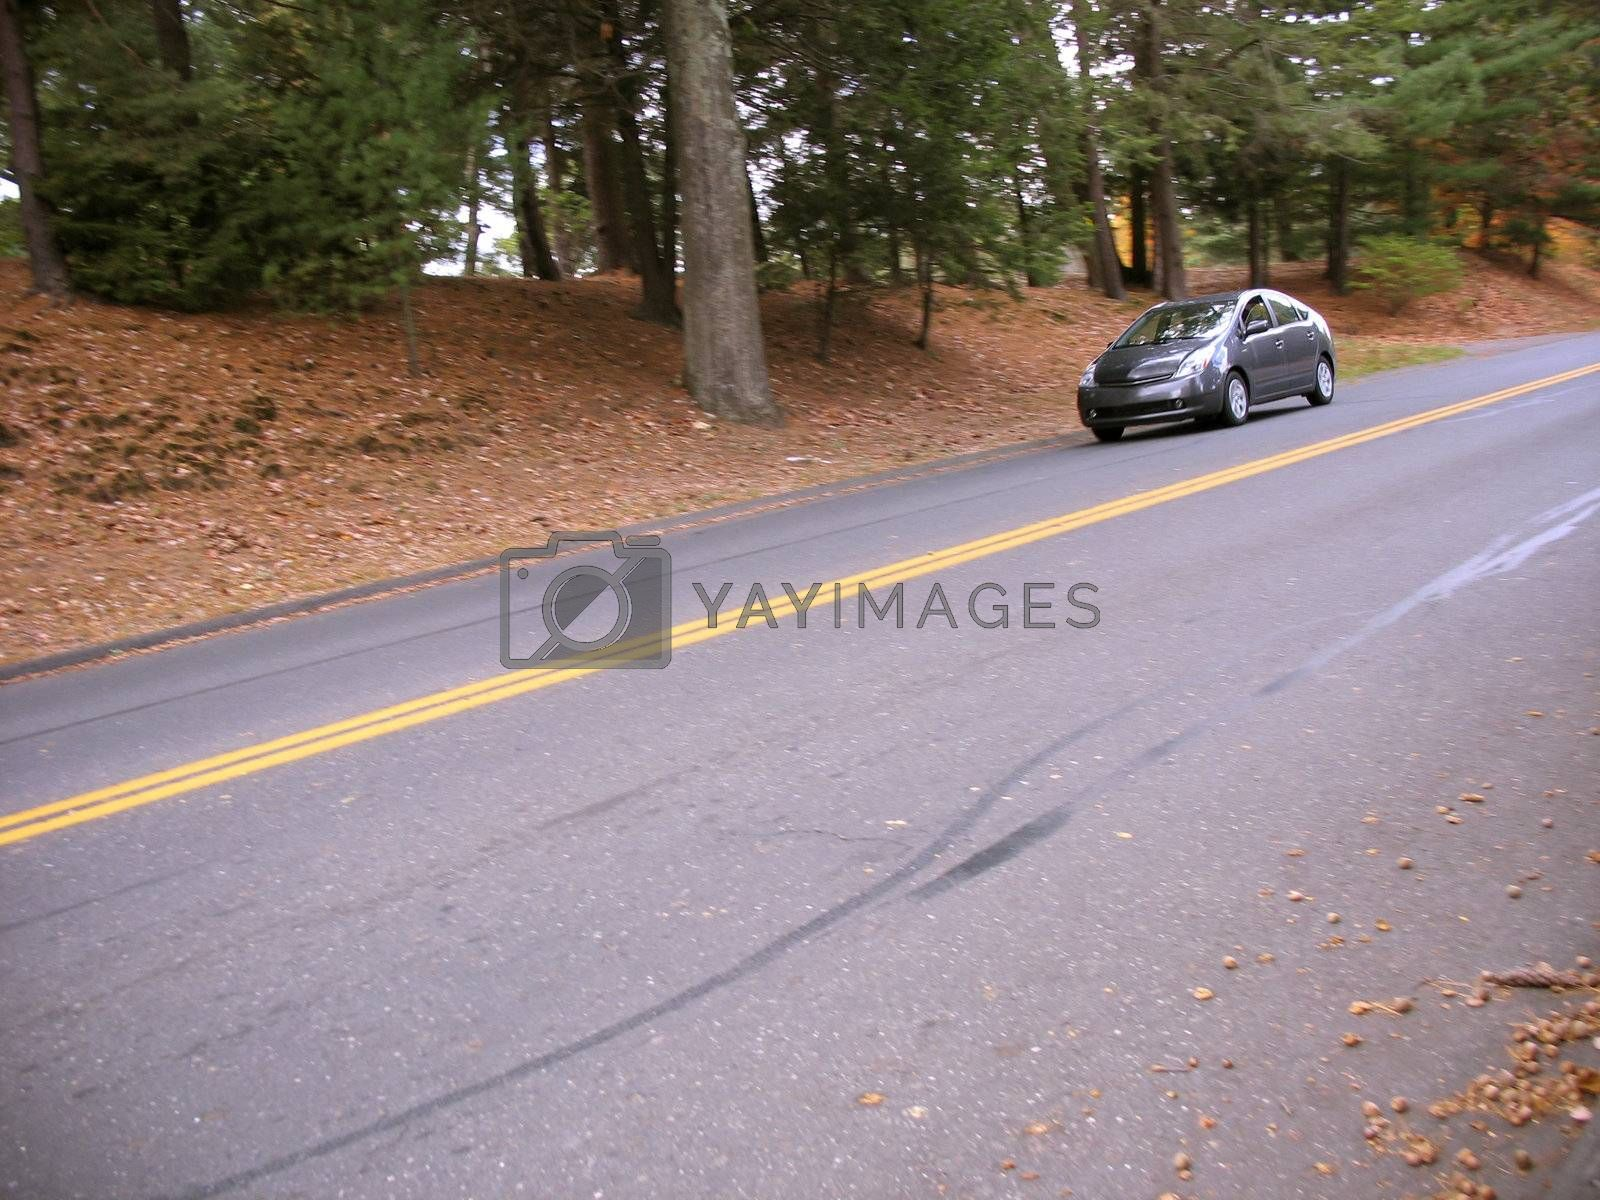 A modern hybrid vehicle driving down the road on a nice autumn day.